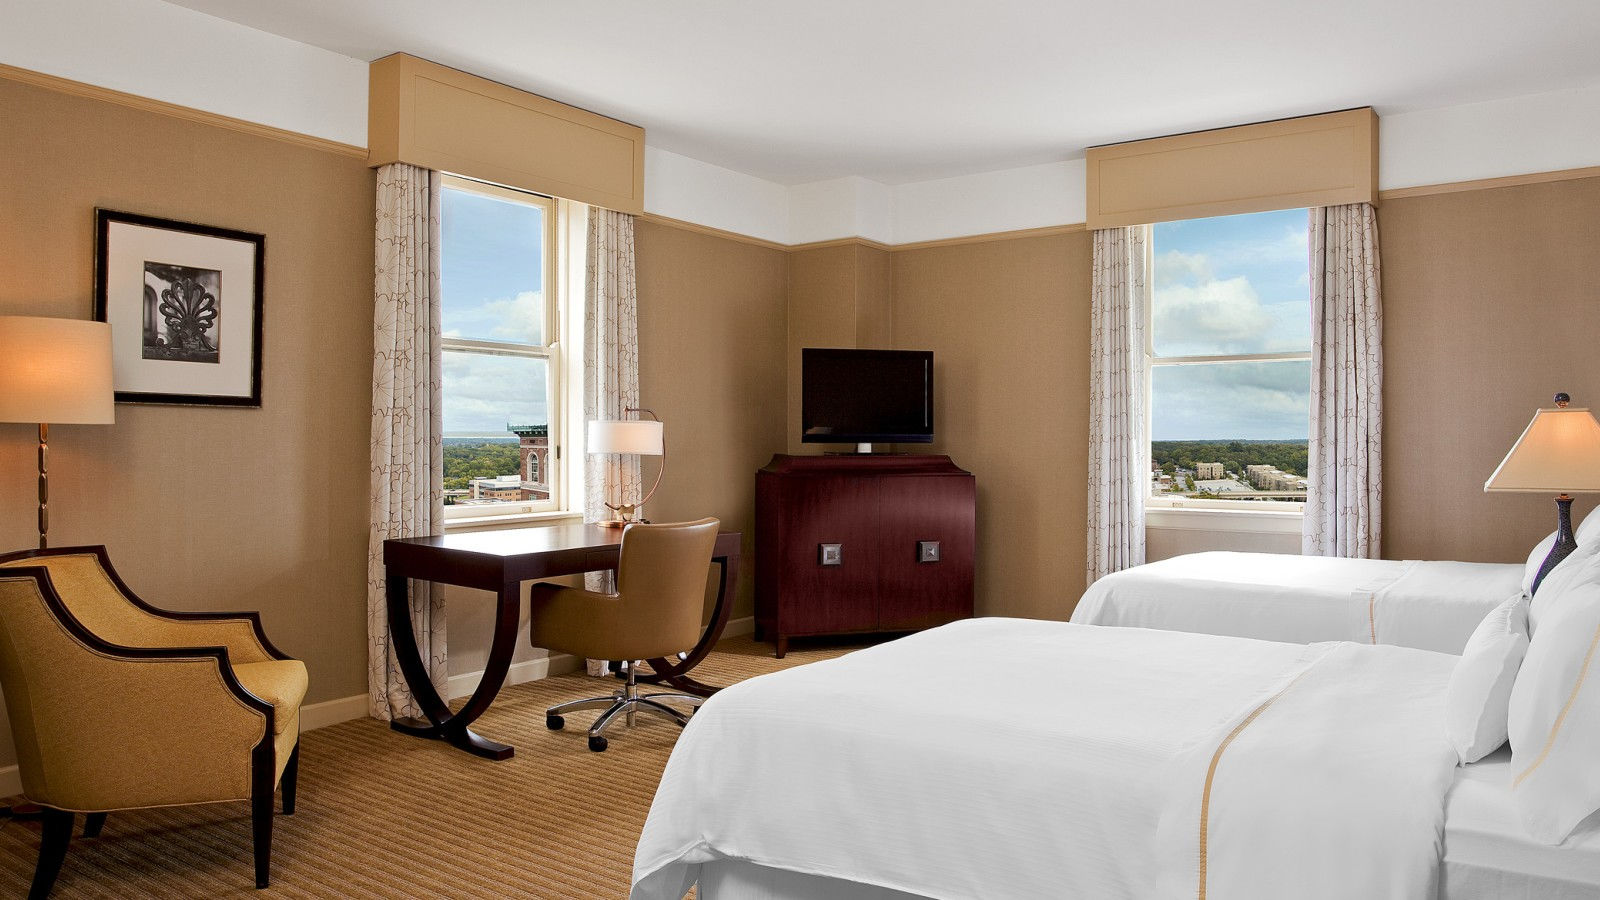 downtown greenville sc hotels the westin poinsett. Black Bedroom Furniture Sets. Home Design Ideas